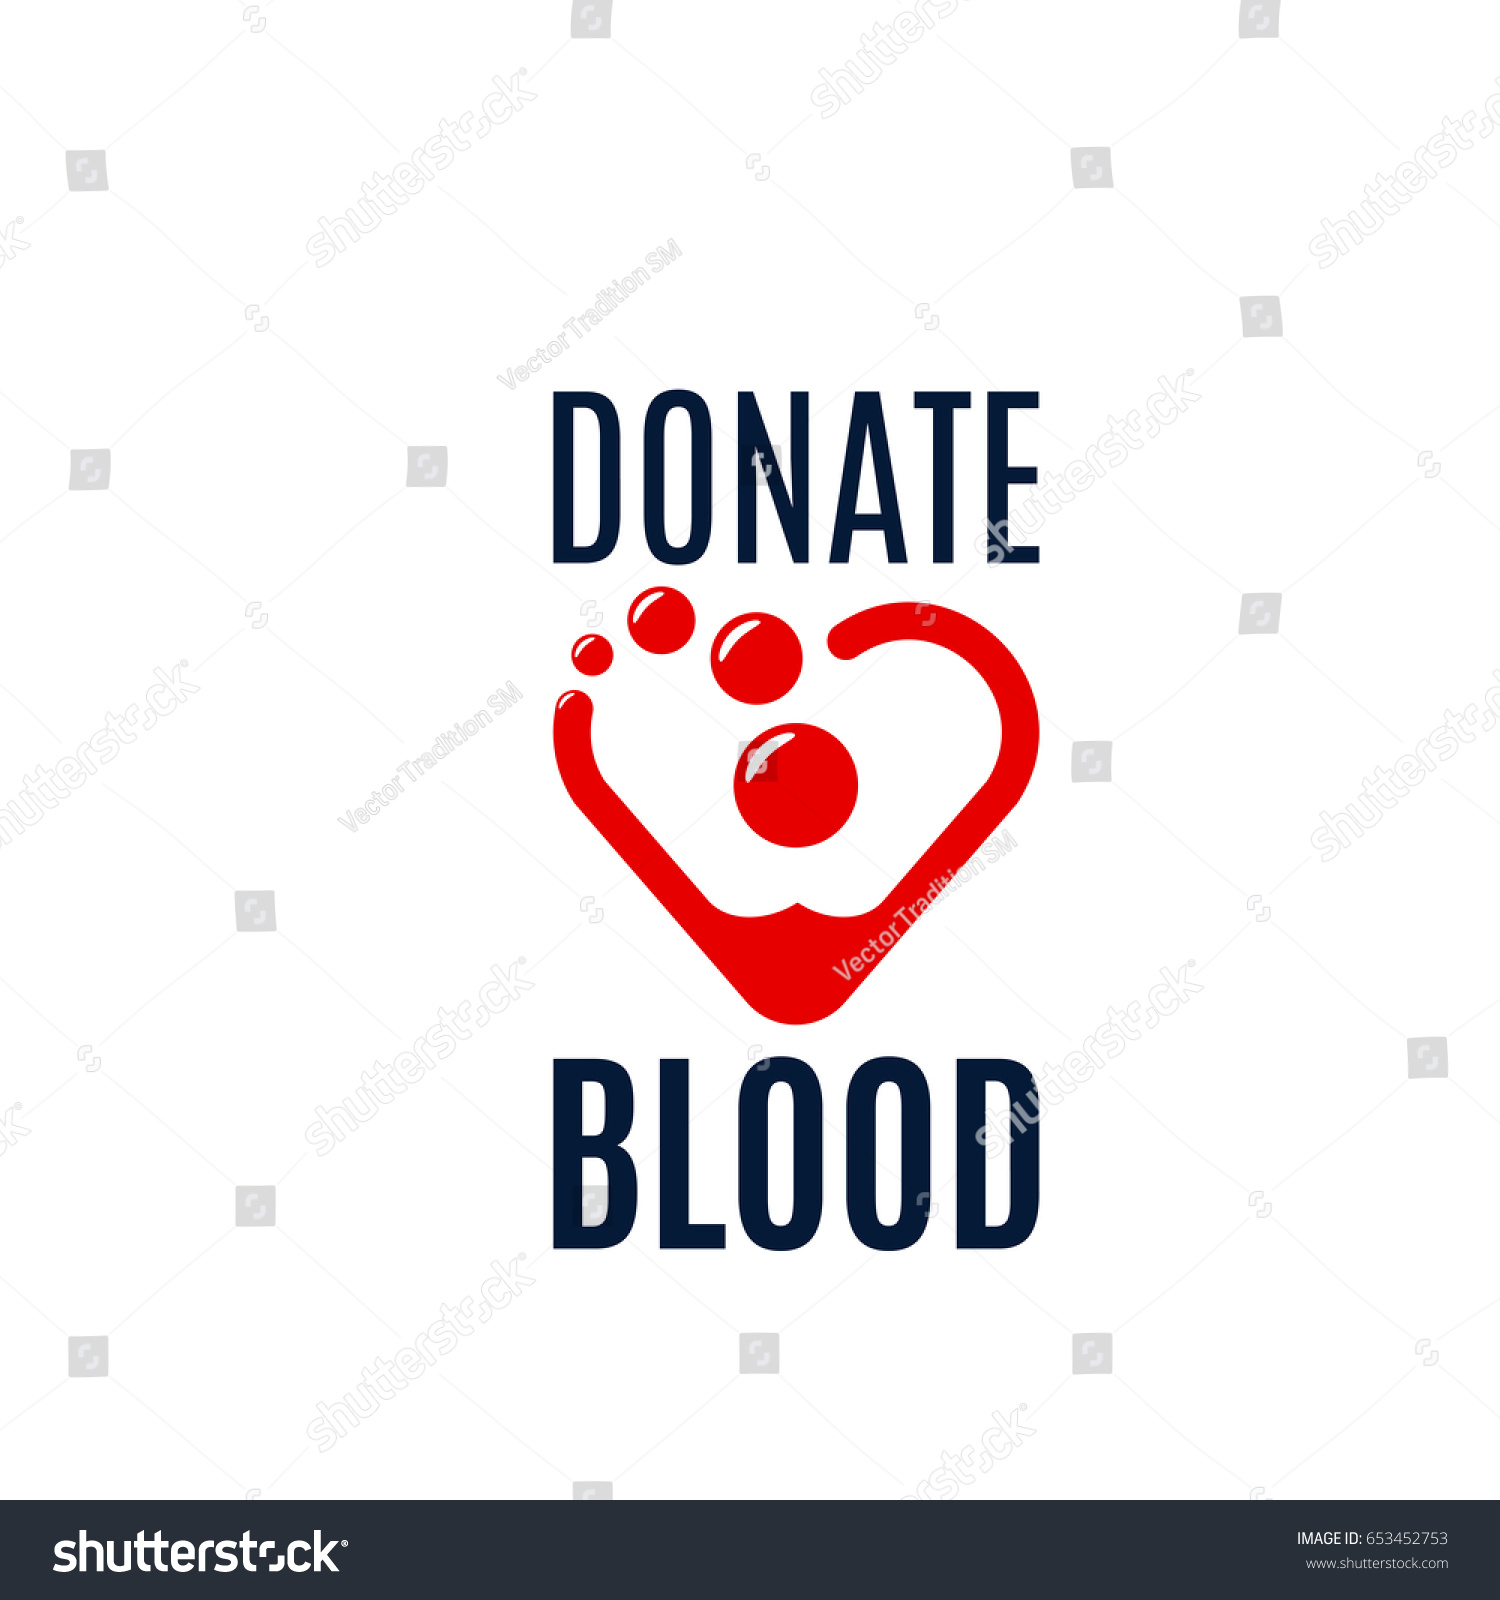 Donate blood icon blood drops falling stock vector 653452753 donate blood icon of blood drops falling into heart vector isolated symbol for 14 june buycottarizona Gallery